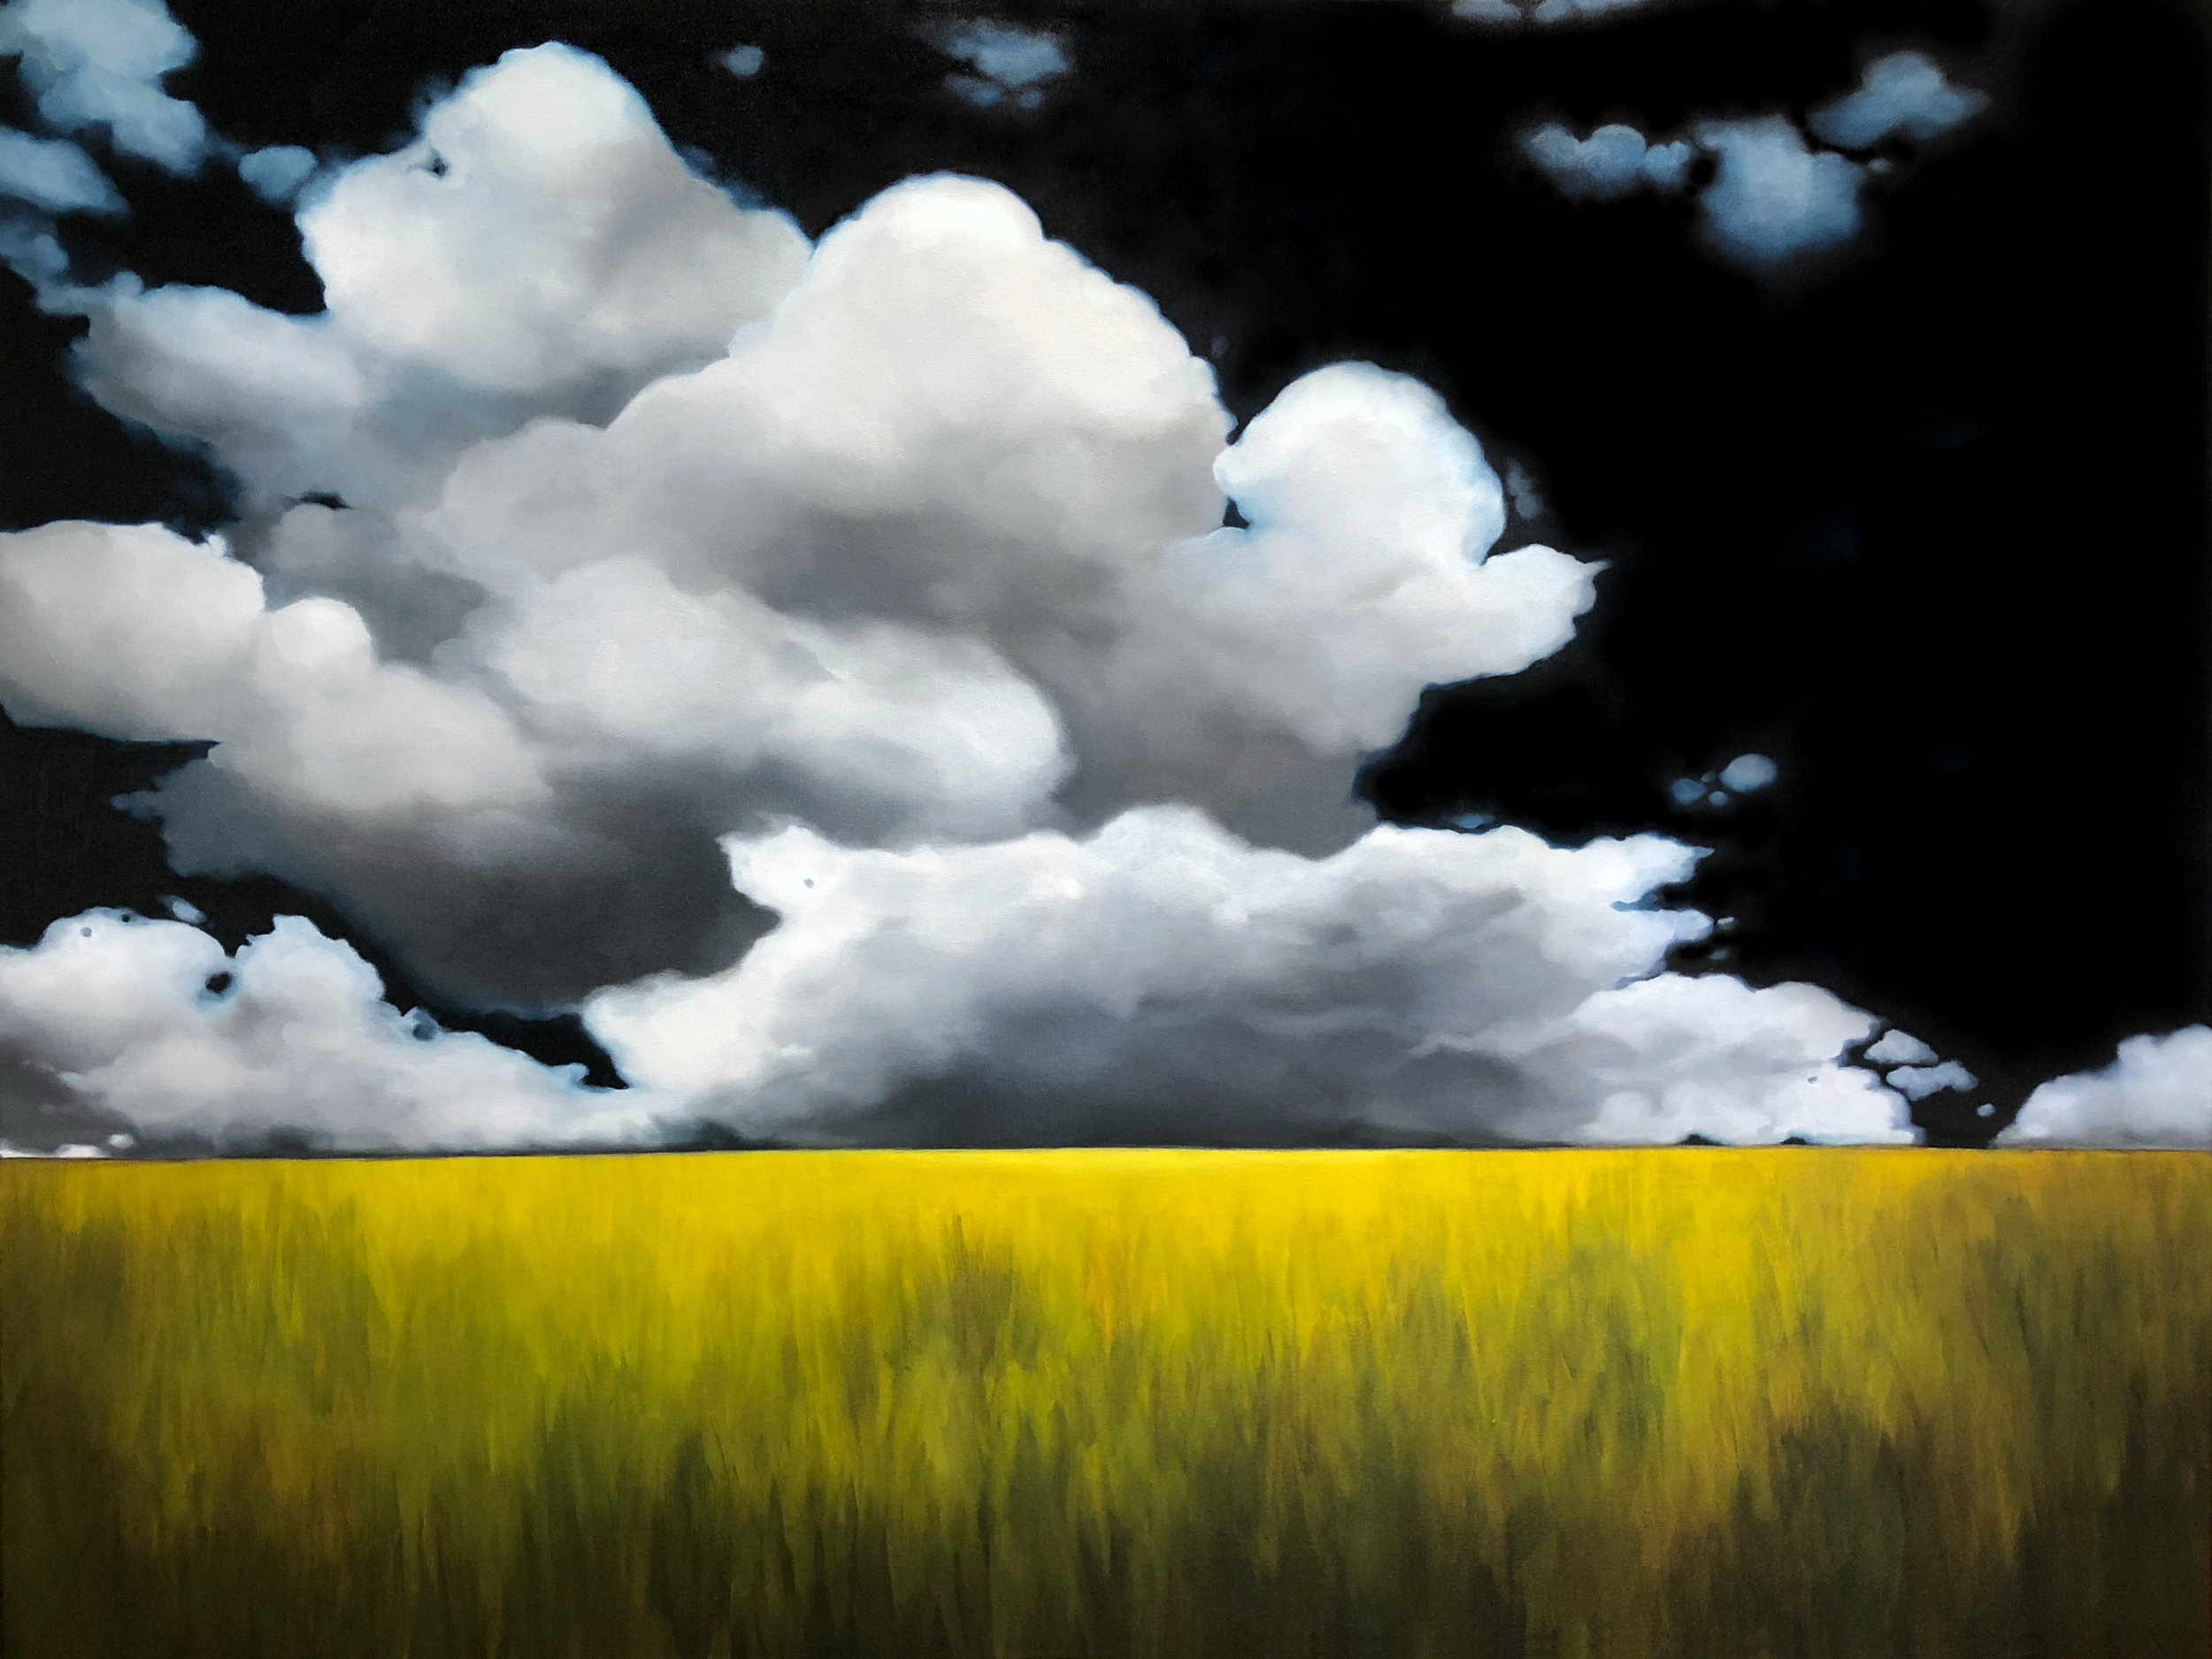 Erin Ross, Dreamscapes (but big) 2, acrylic & oil on canvas, 36 x 48 inches